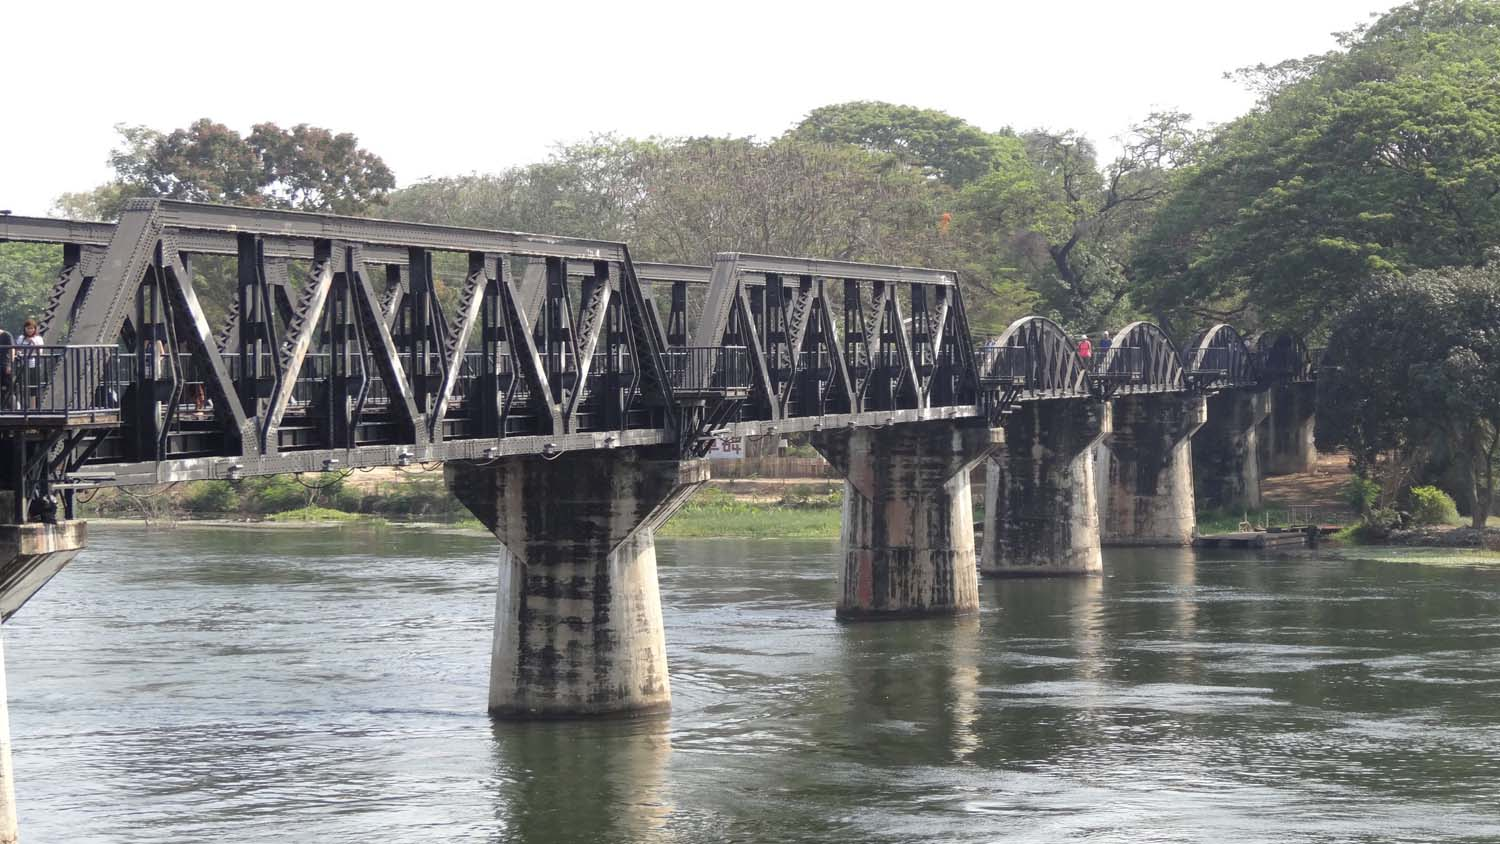 the famous bridge over the River Kwai